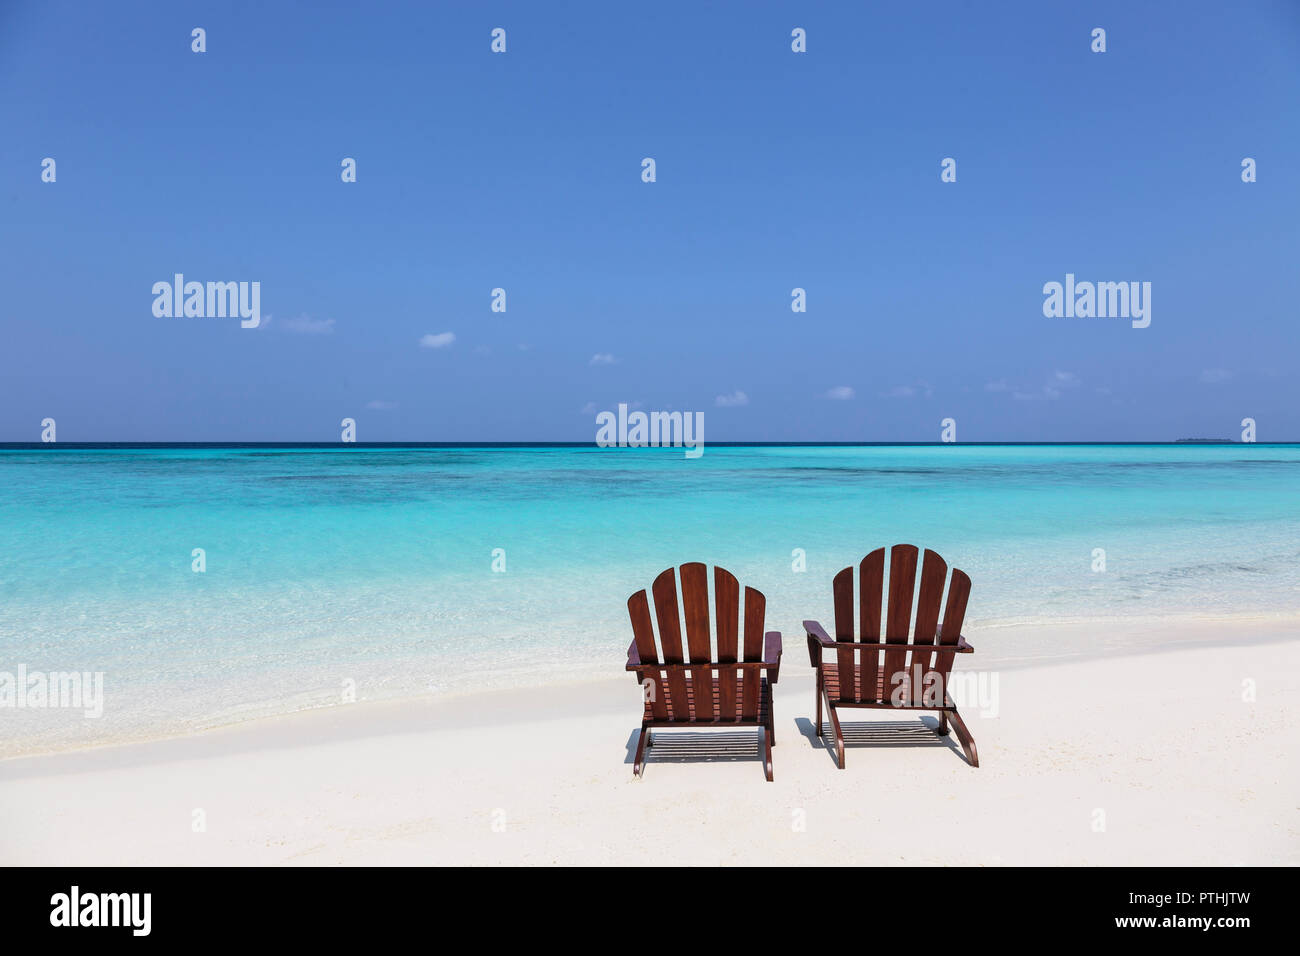 Two Adirondack Chairs On Sunny Tranquil Beach Overlooking Blue Ocean Maldives Indian Ocean Stock Photo Alamy